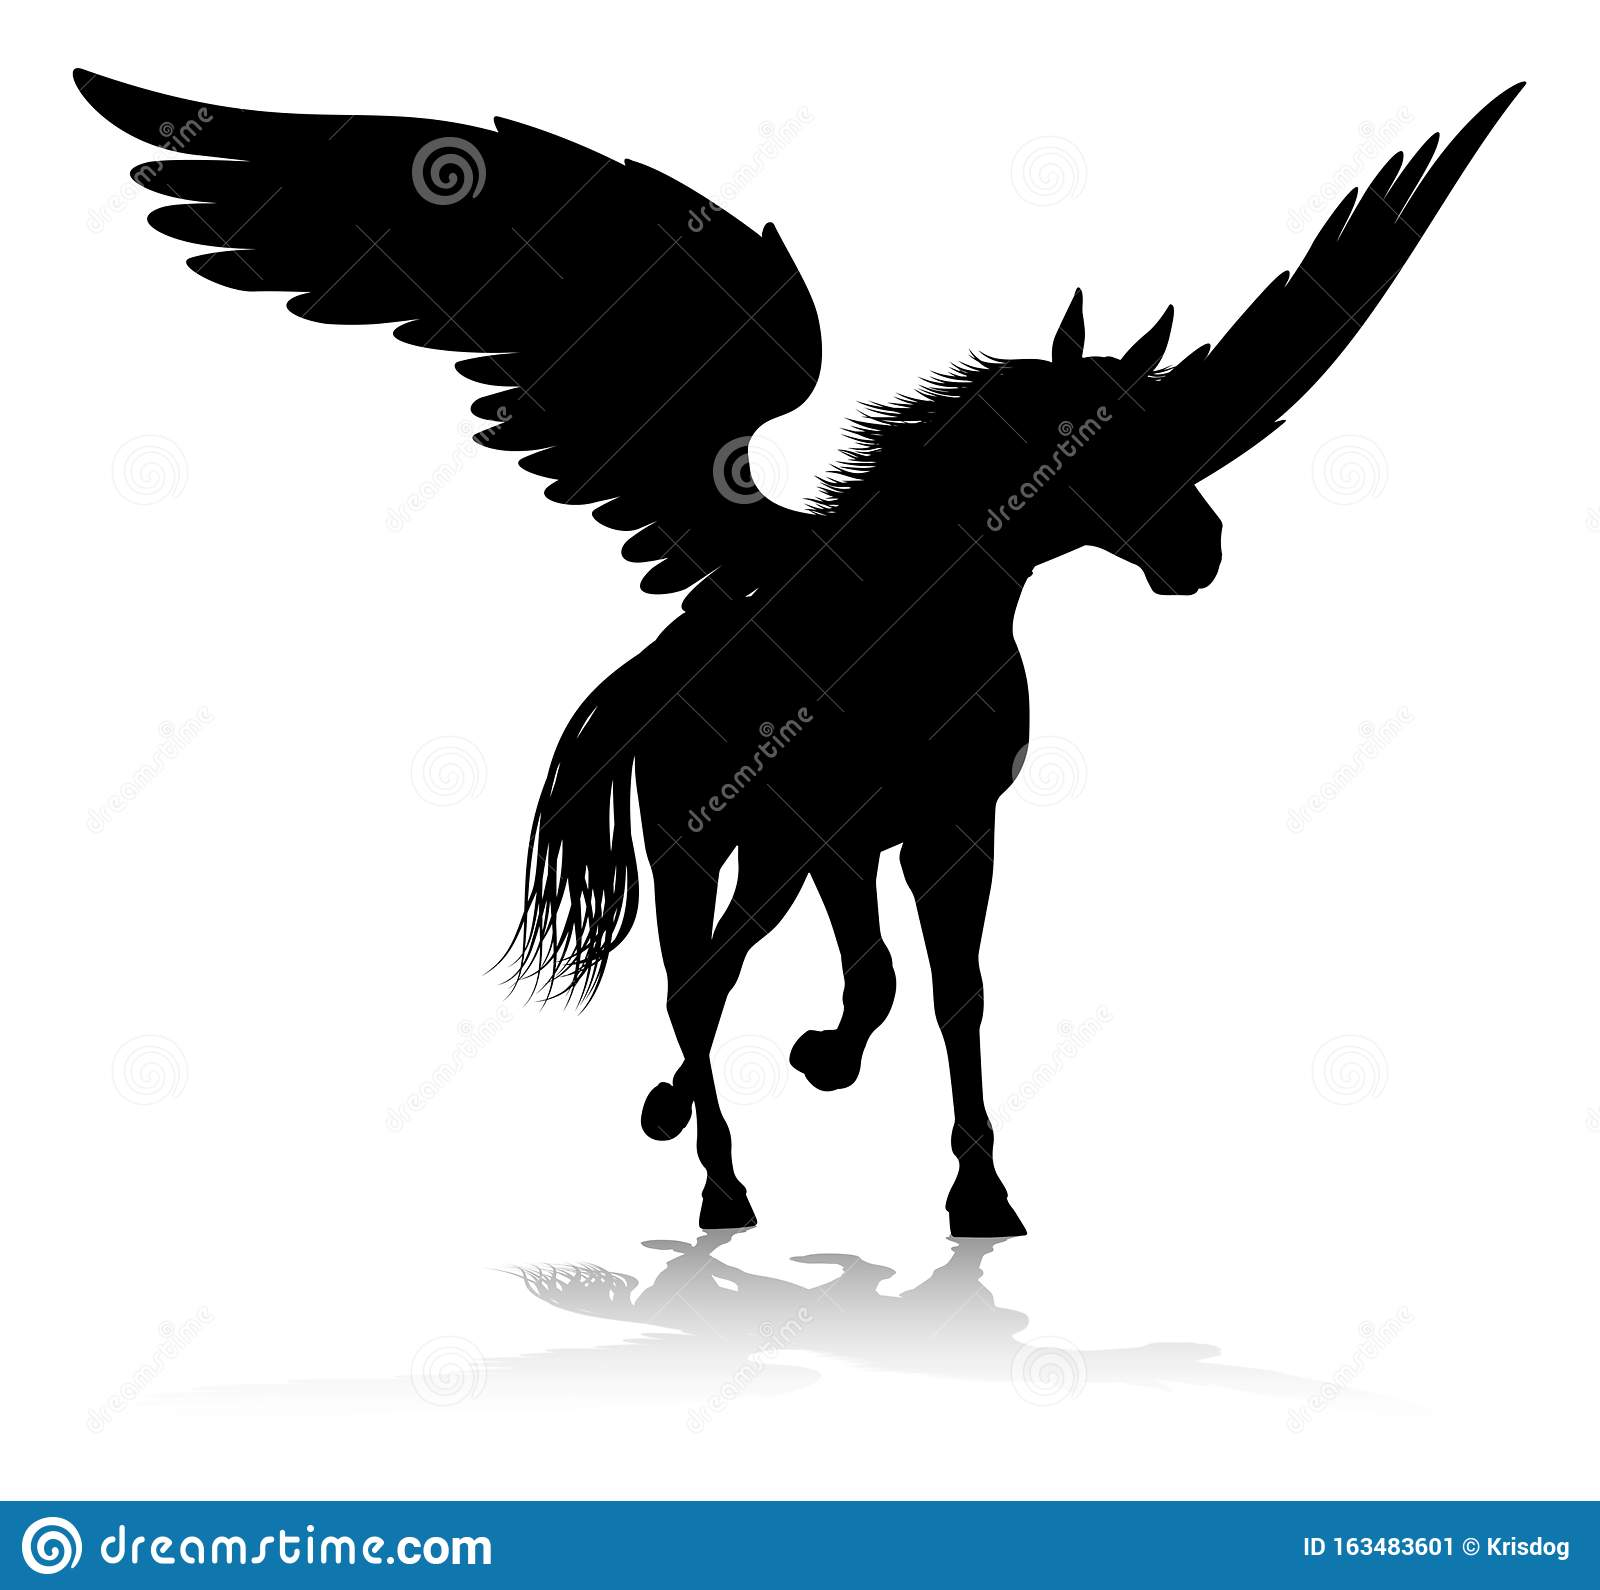 Pegasus Silhouette Mythological Winged Horse Stock Vector ...